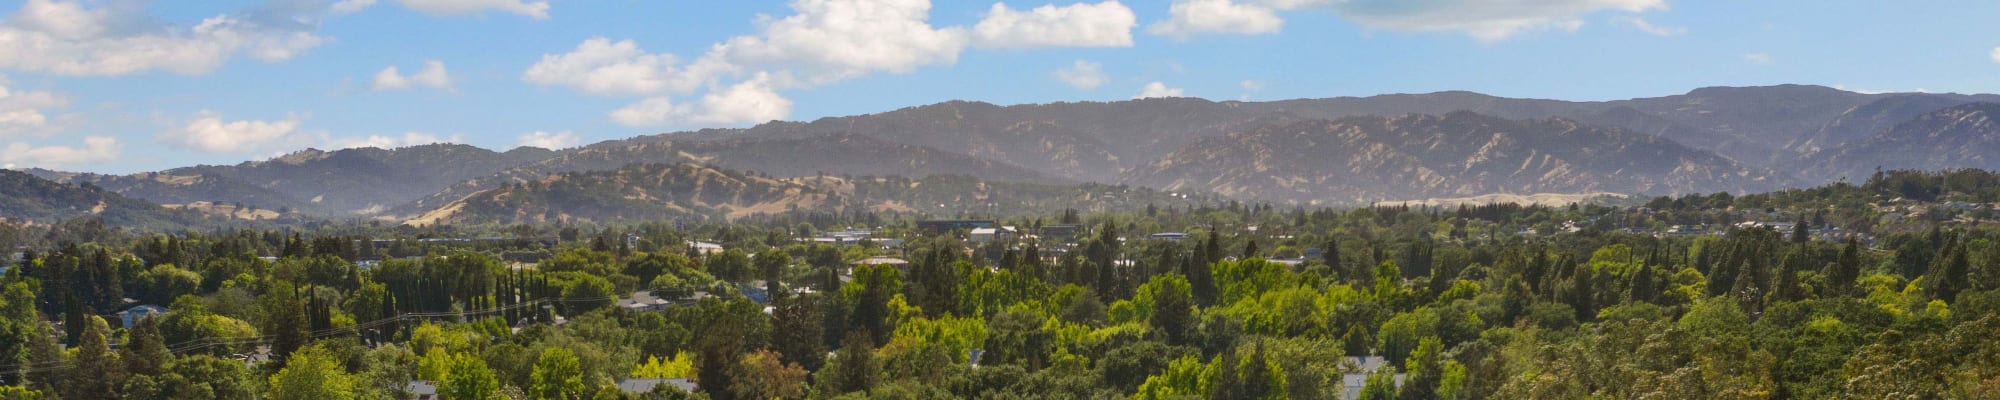 Photo gallery at River Oaks Apartment Homes in Vacaville, California